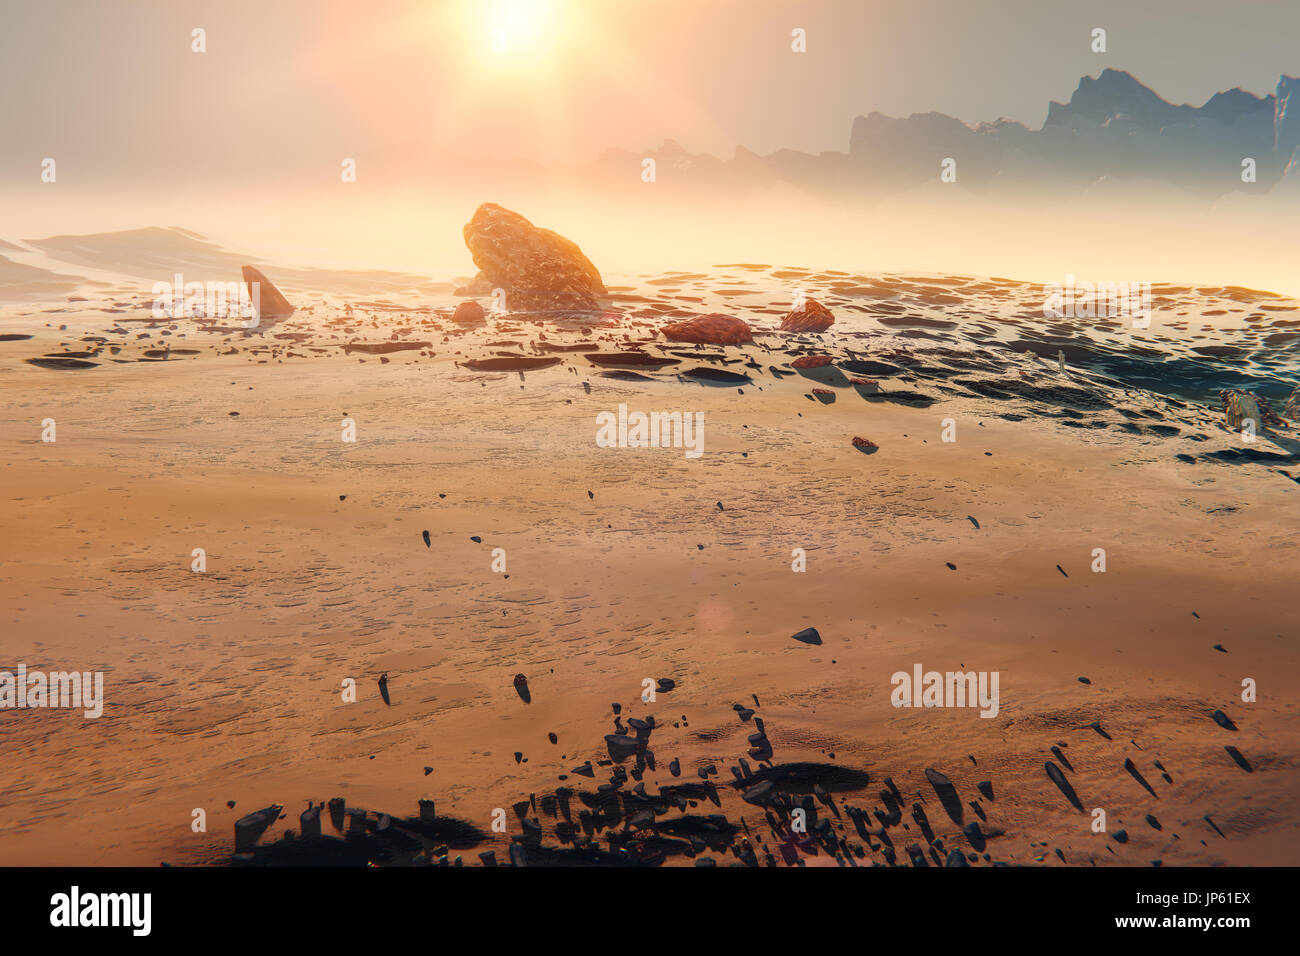 Martian Surface Stock Photos & Martian Surface Stock ...